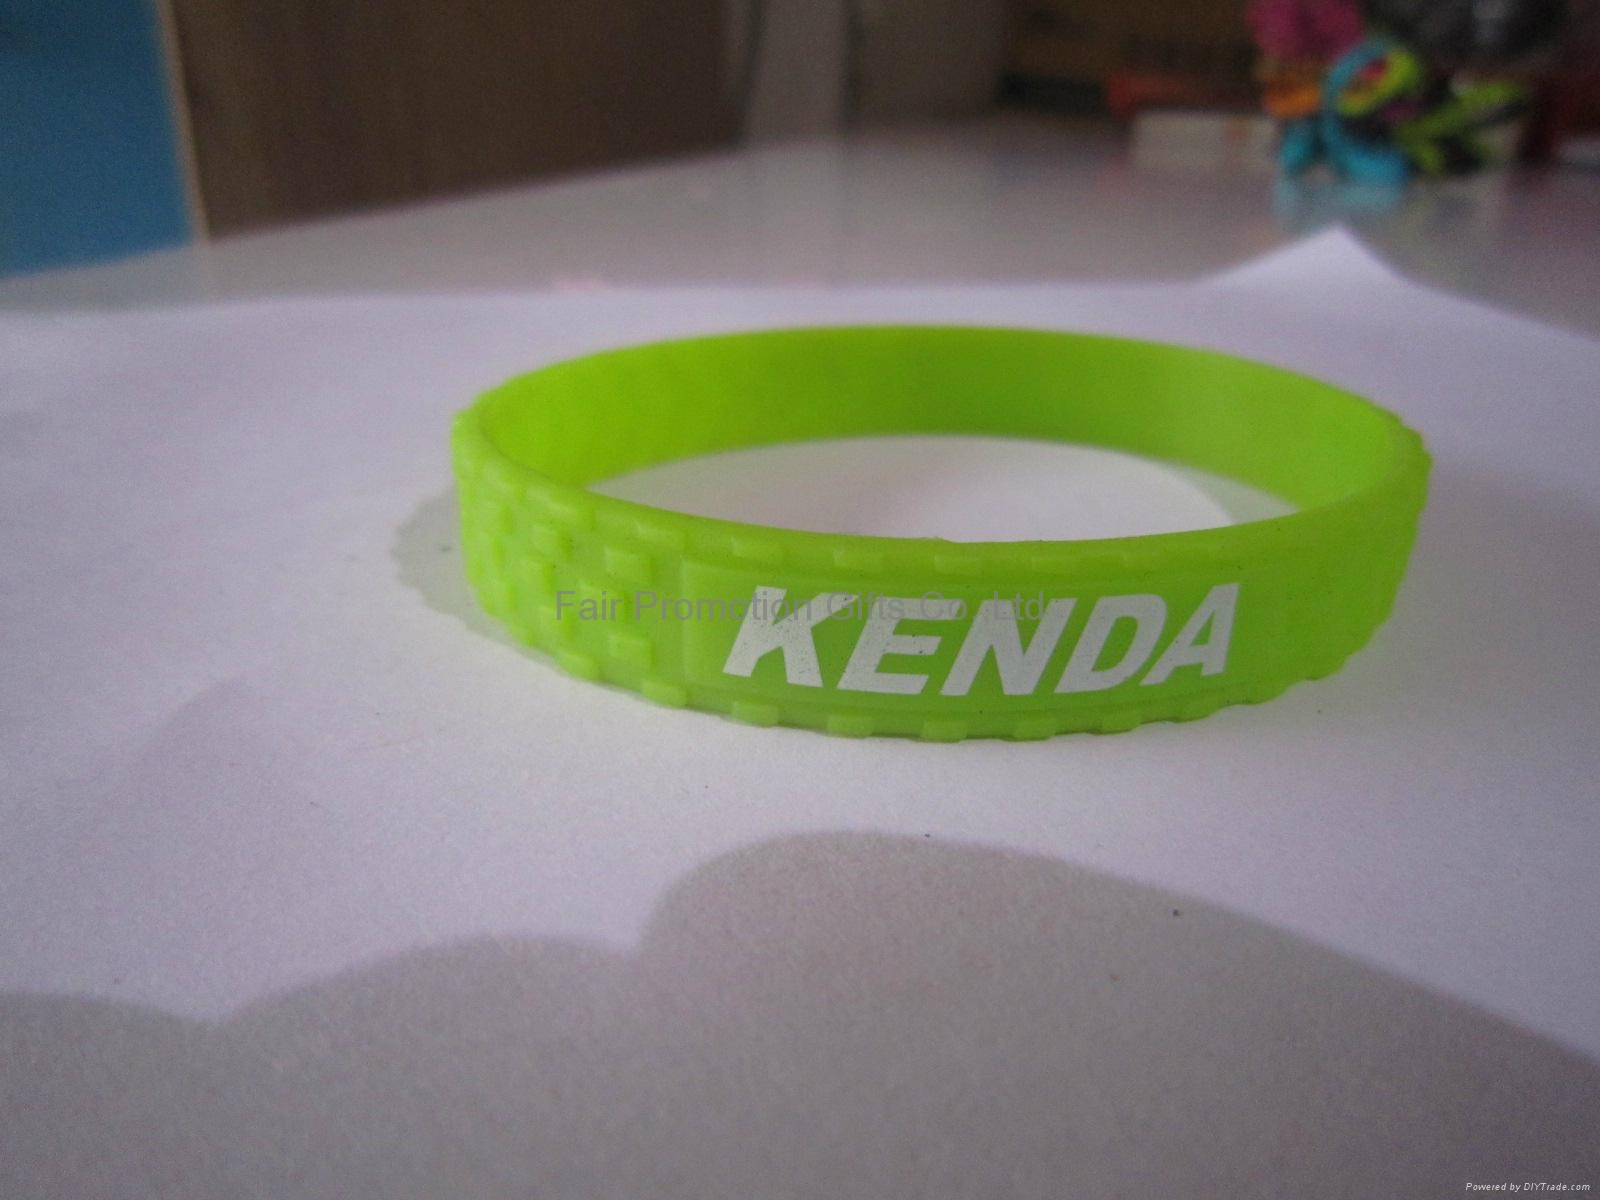 Kenda Bicycle Road Tire Bracelet 5